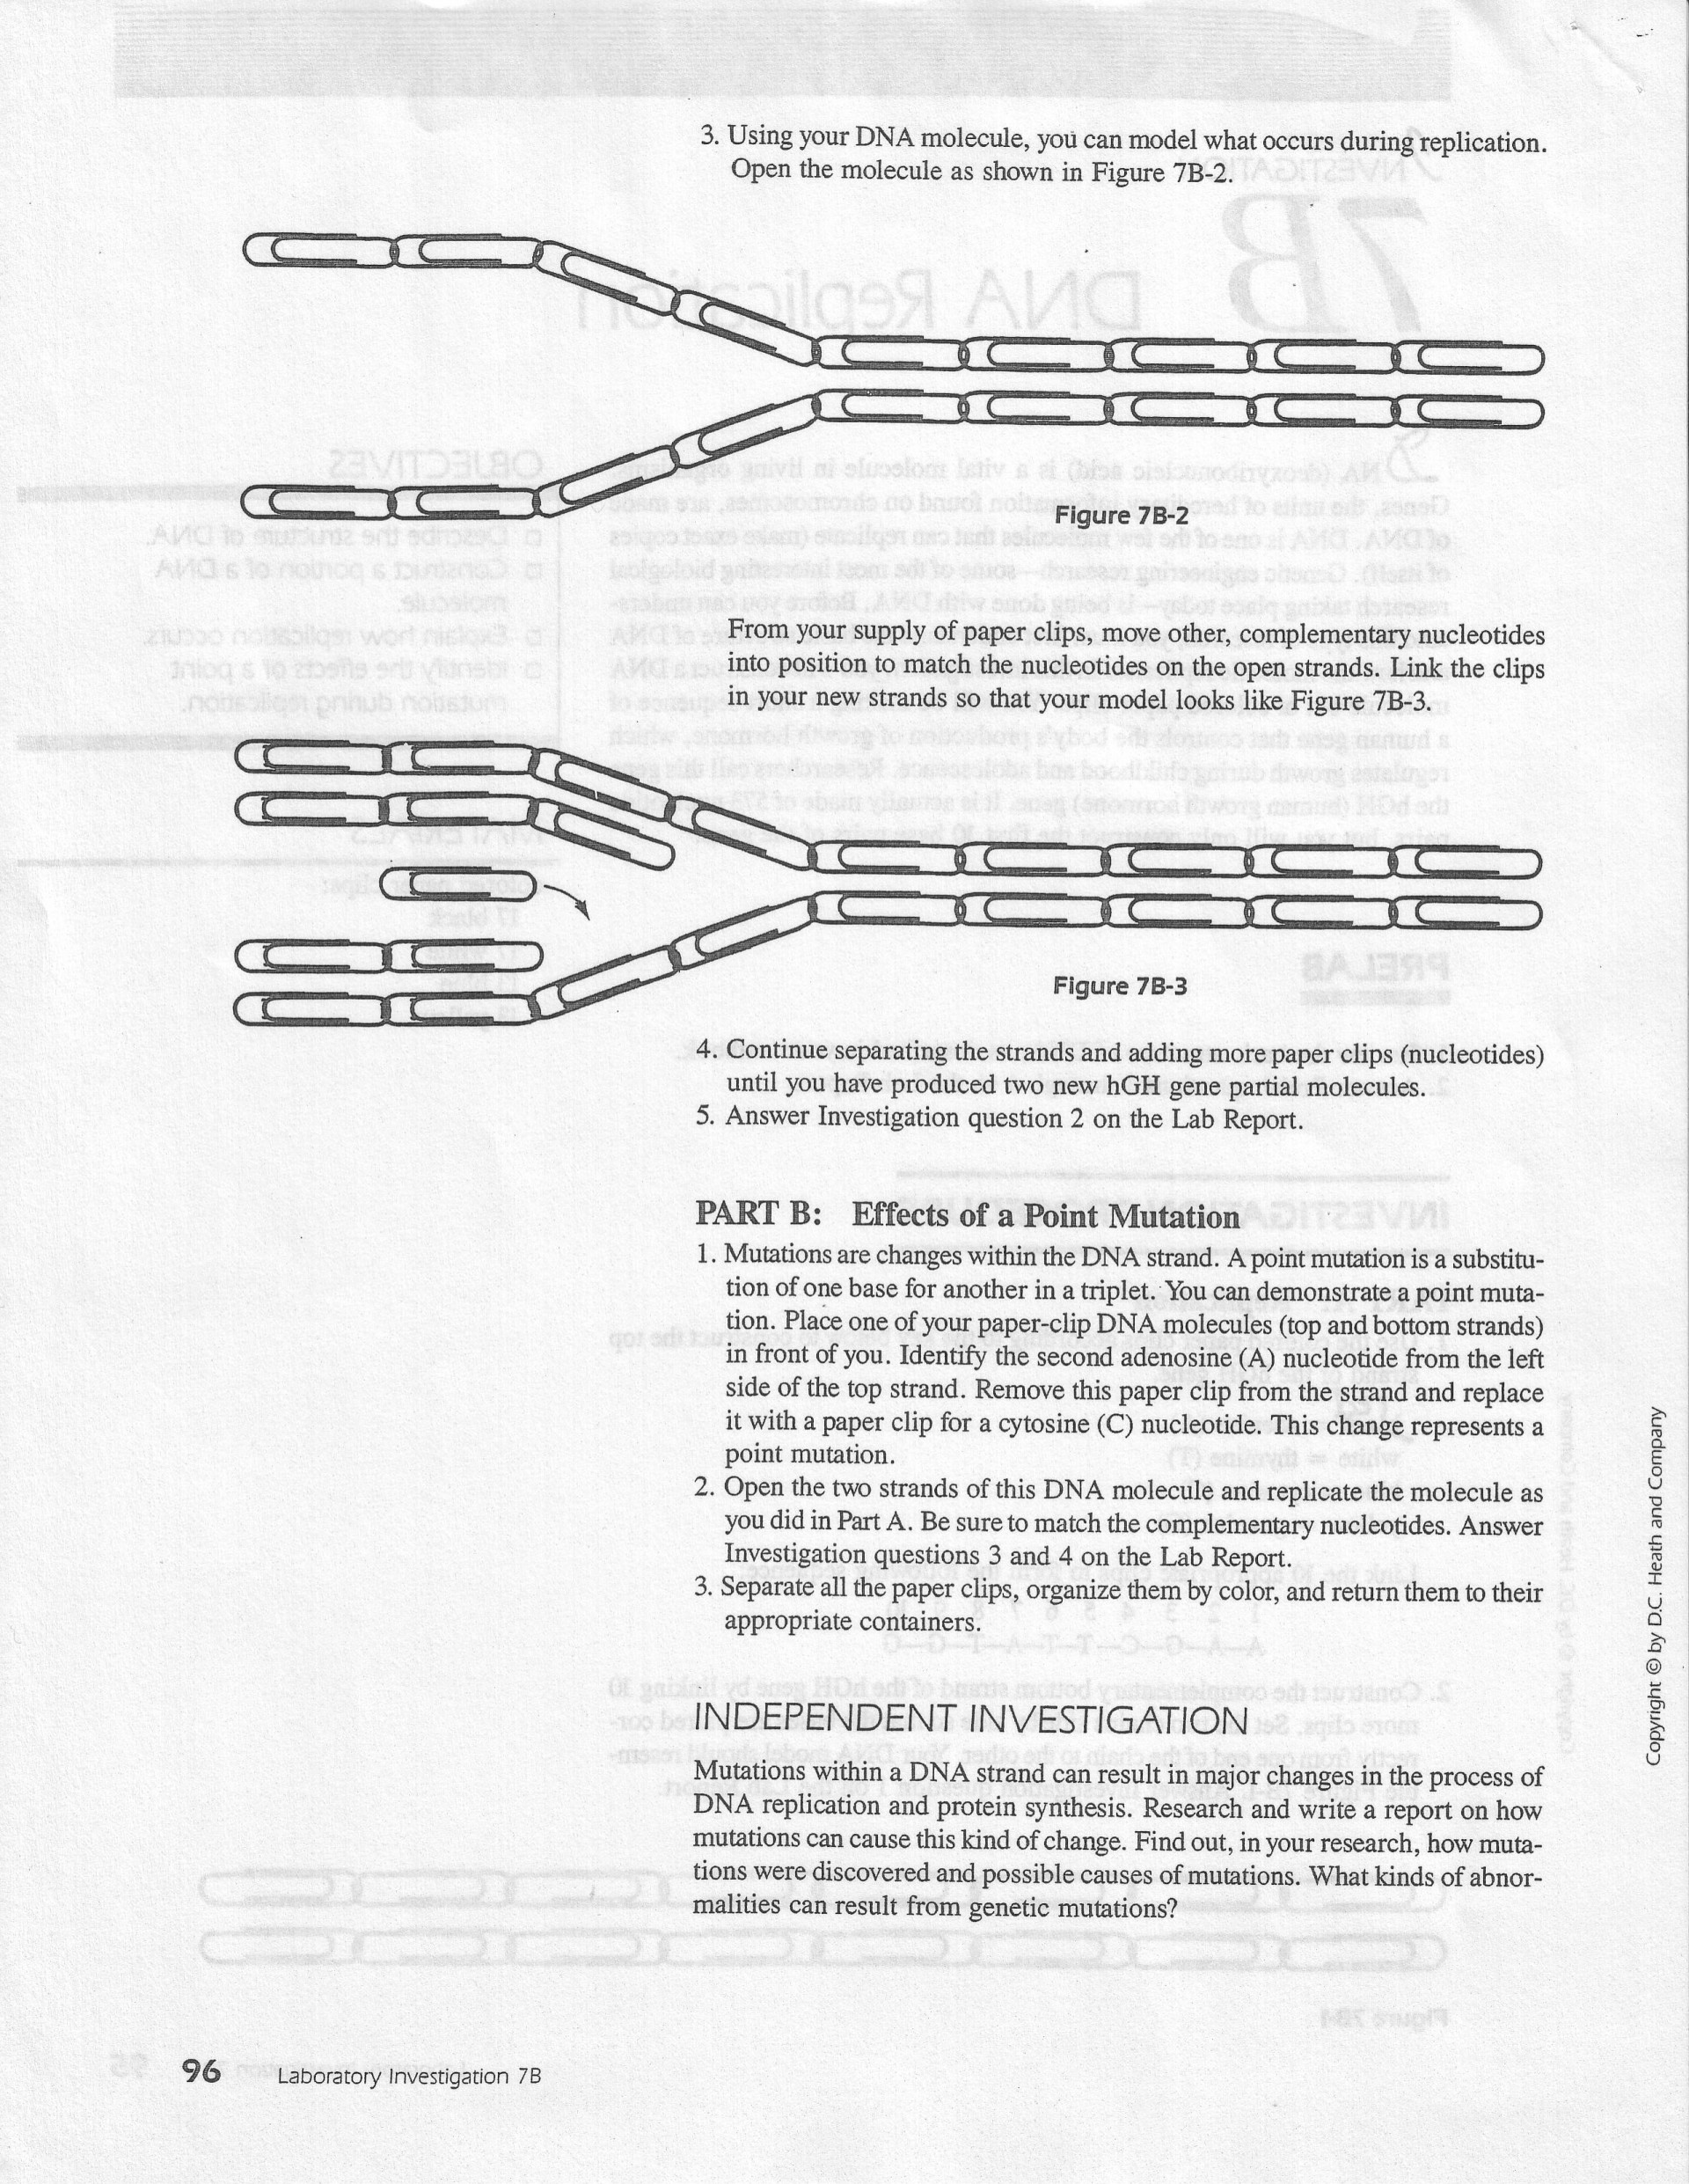 006 Brown Vs Board Of Education Essay Replicationlab2 Jpg Magnificent Conclusion Term Paper Thematic 1920